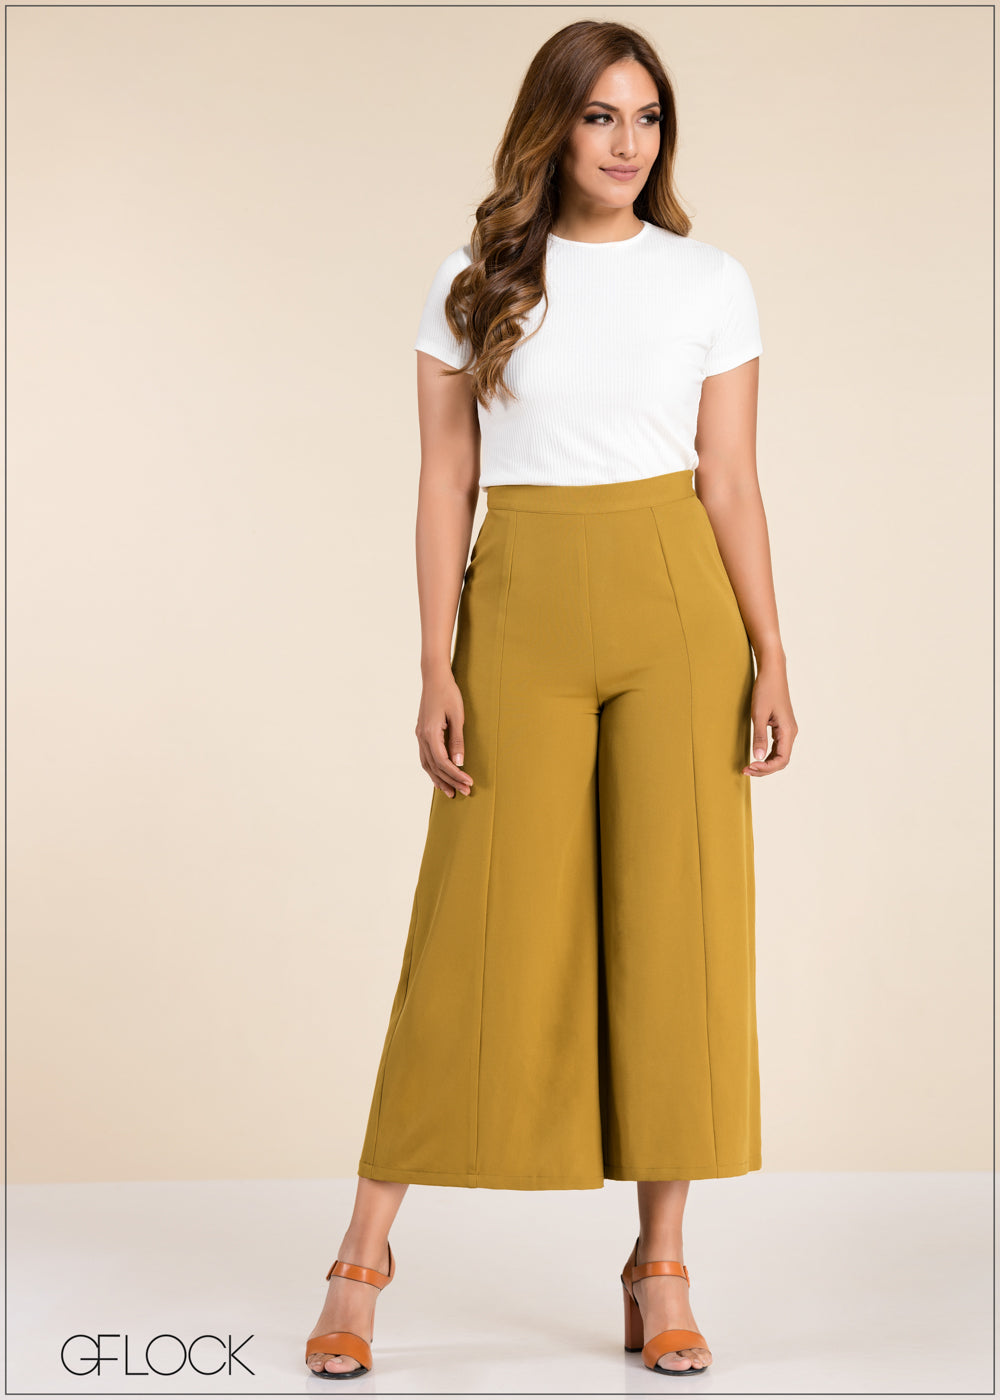 Seam Detailed Flared Pant - GFLOCK.LK